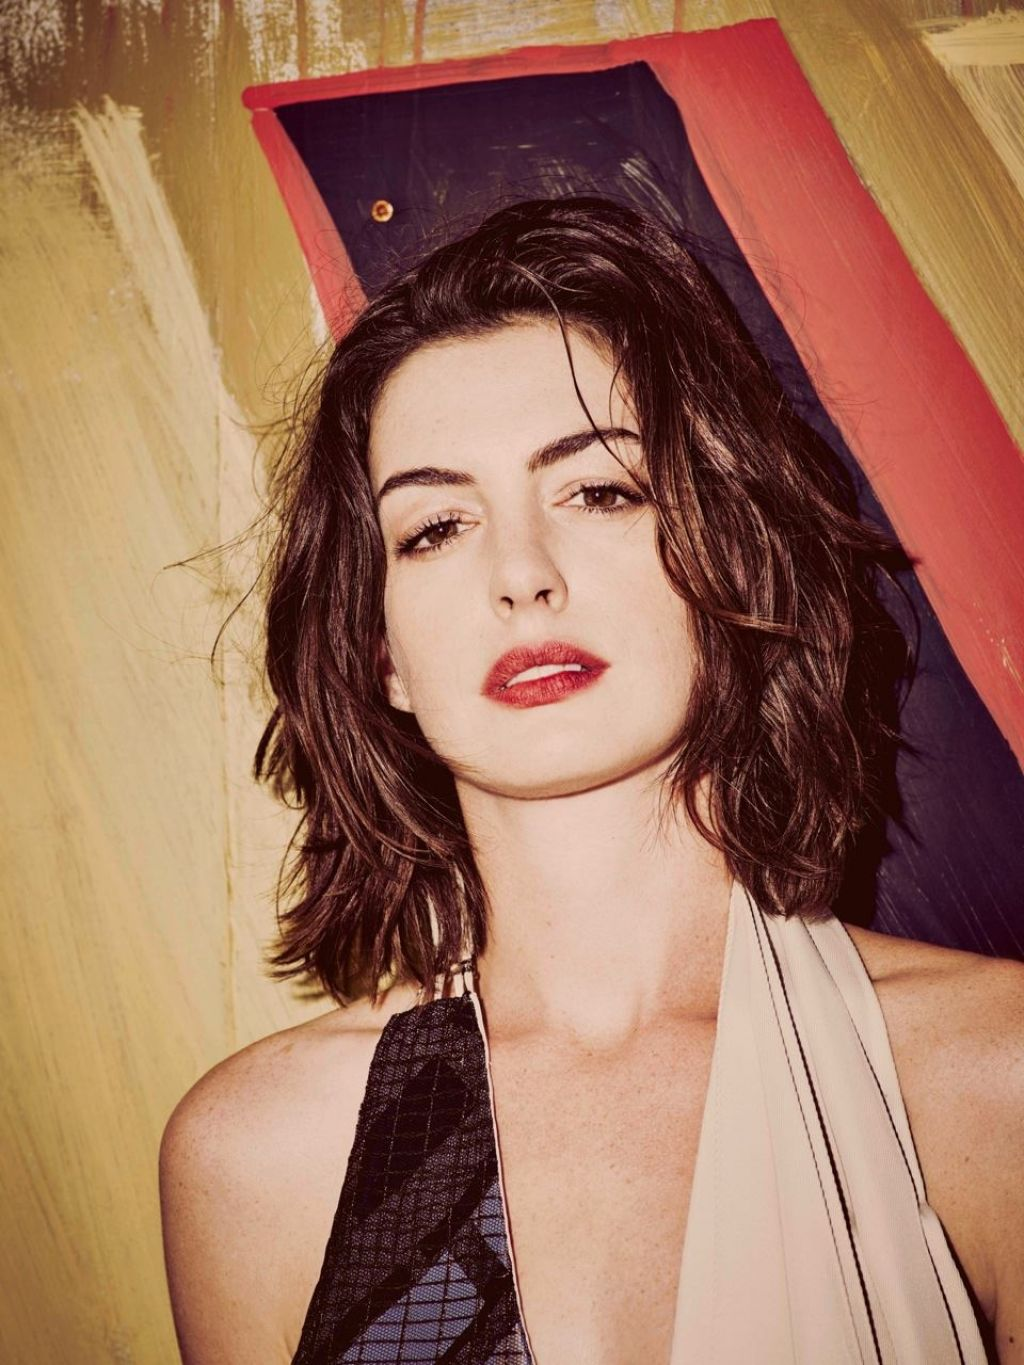 Anne Hathaway Photoshoot For Refinery29 September 2015